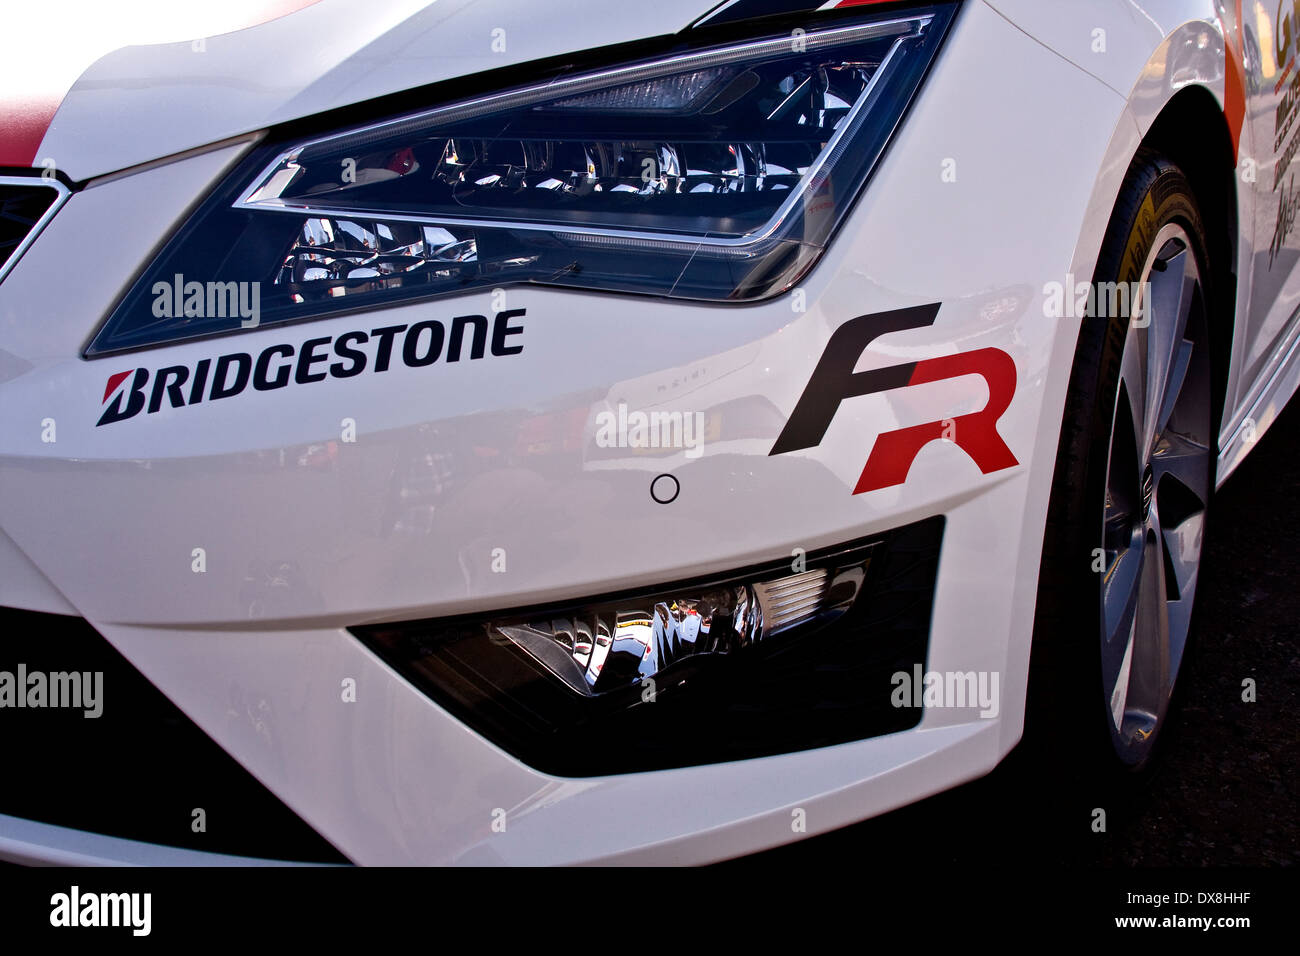 The new seat leon sports car with bridgestone tyres sticker on the front at the alistair fleming car showroom in dundee uk